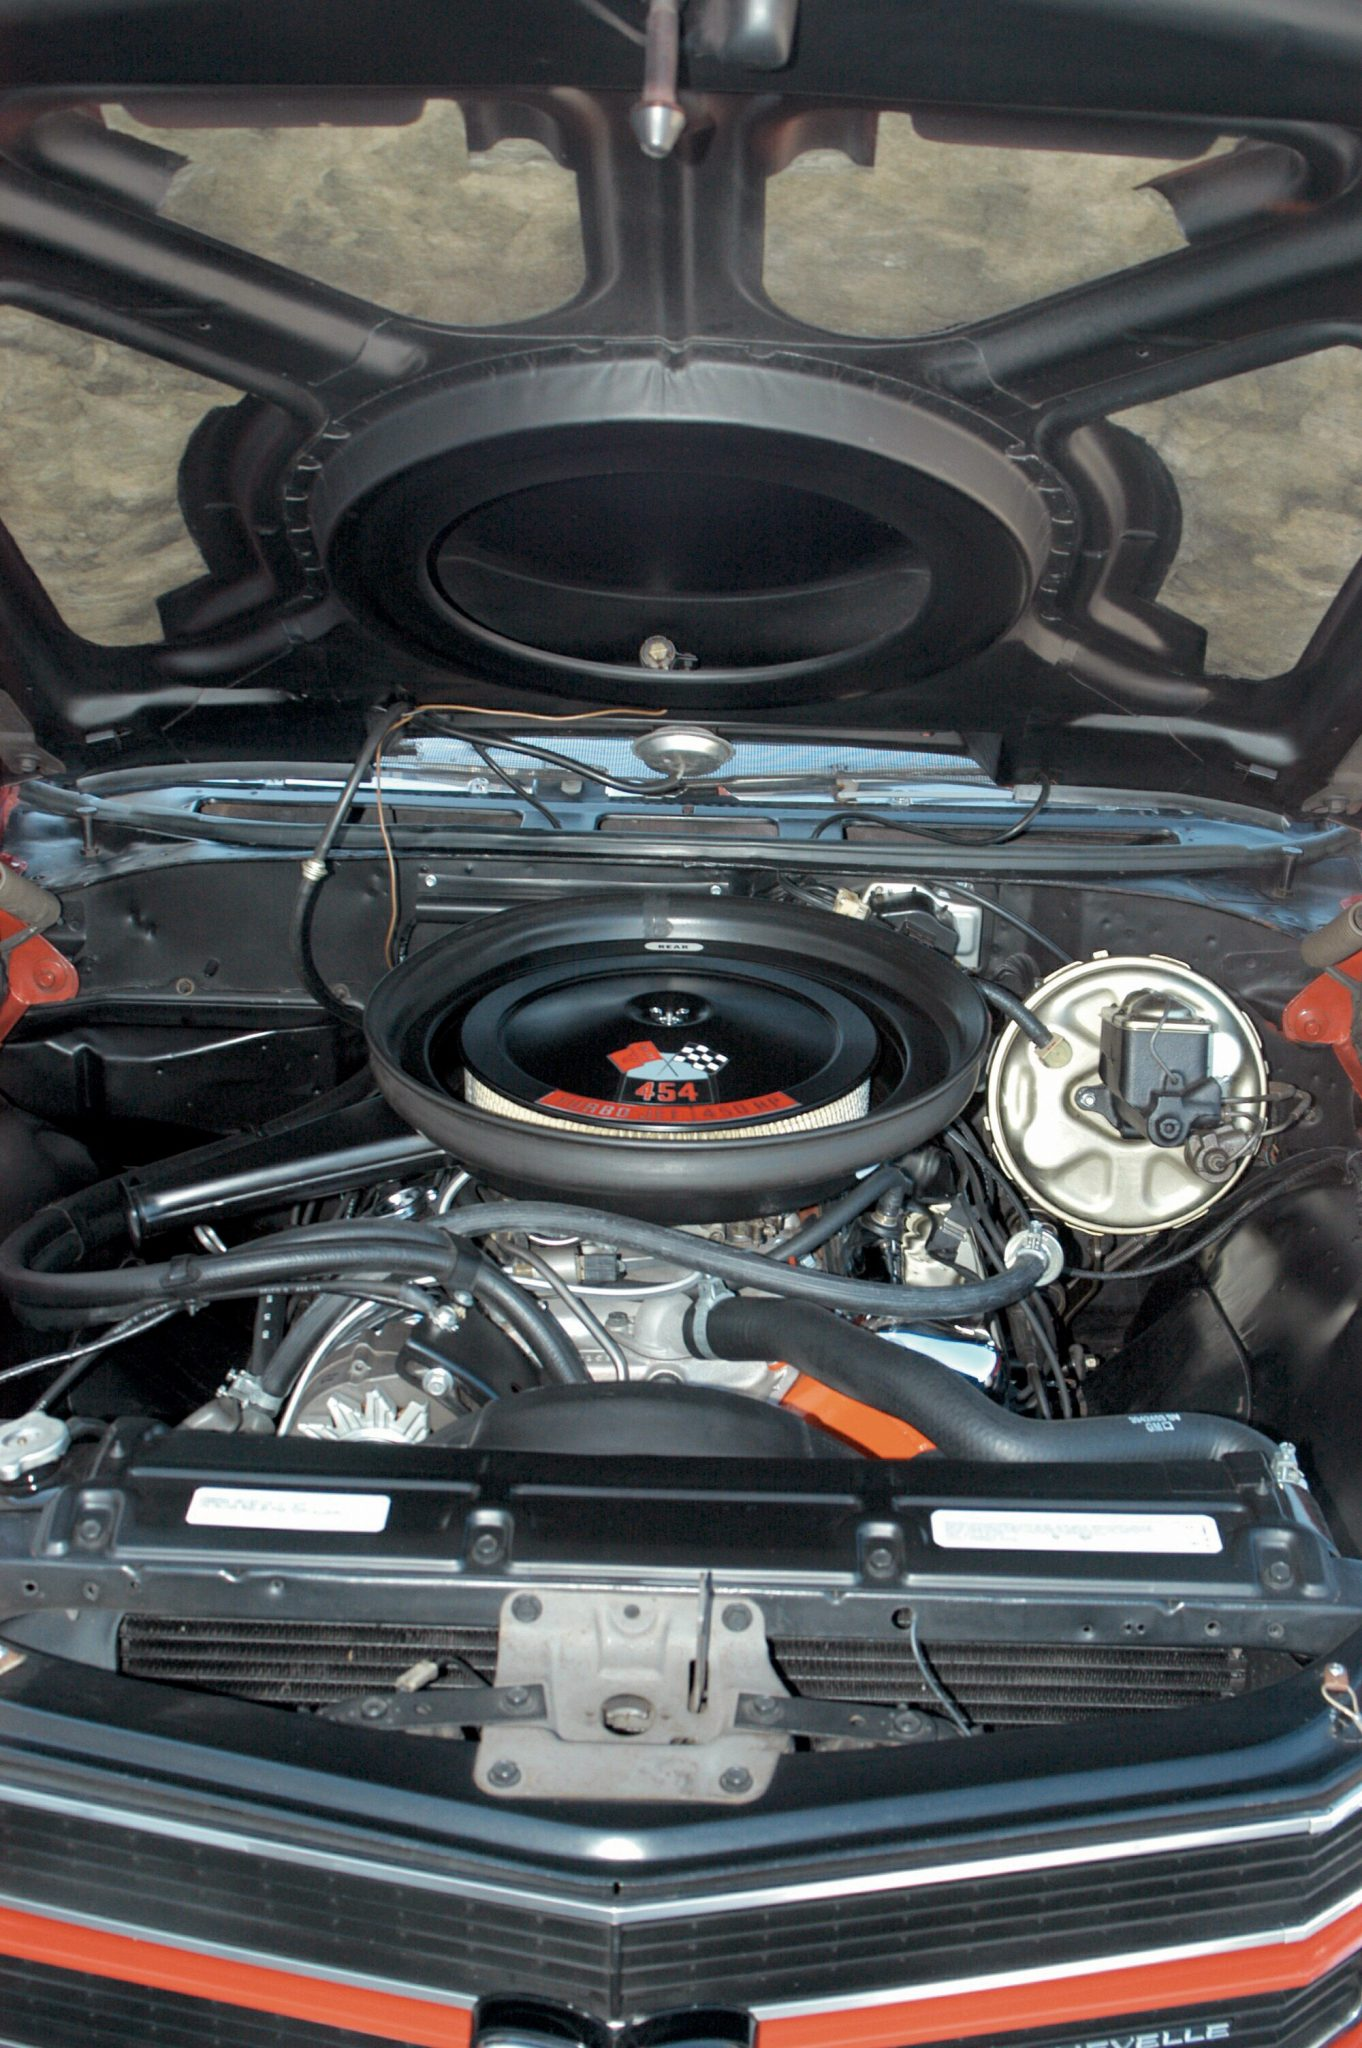 1970 Chevelle LS6 454 Engine